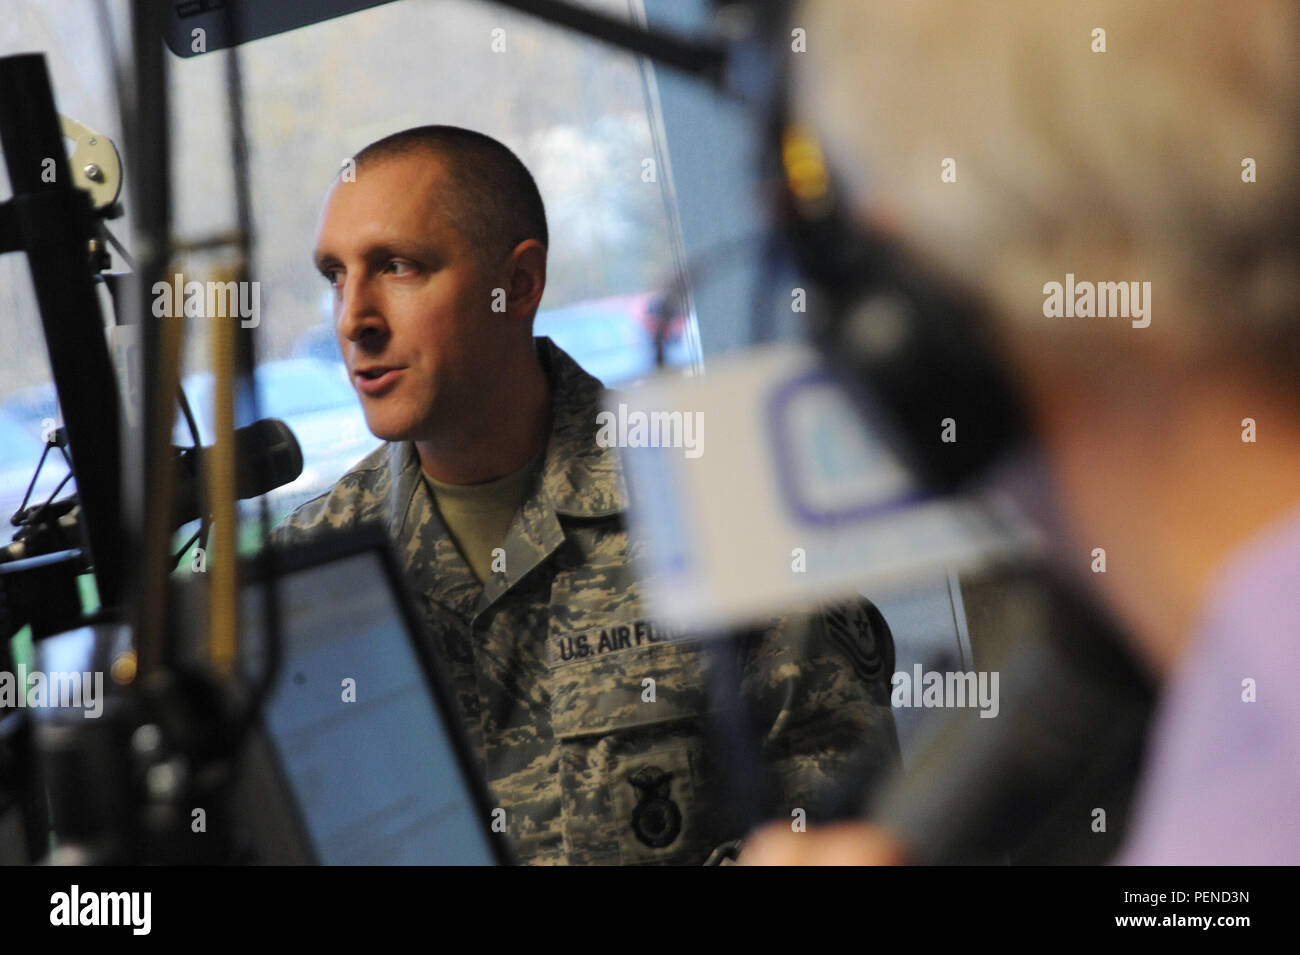 Oregon Air National Guard Master Sgt. Matt Kochosky talks on air during the Mark and Dave Radio Program, KPAM 860 radio, as part of Operation Santa Claus, an annual fundraiser, which assists local families coping with income loss due to military deployment, Dec. 4, 2015, in Clackamas, Ore. (U.S. Air Force photo by Tech. Sgt. John Hughel, 142nd Fighter Wing Public Affairs) - Stock Image